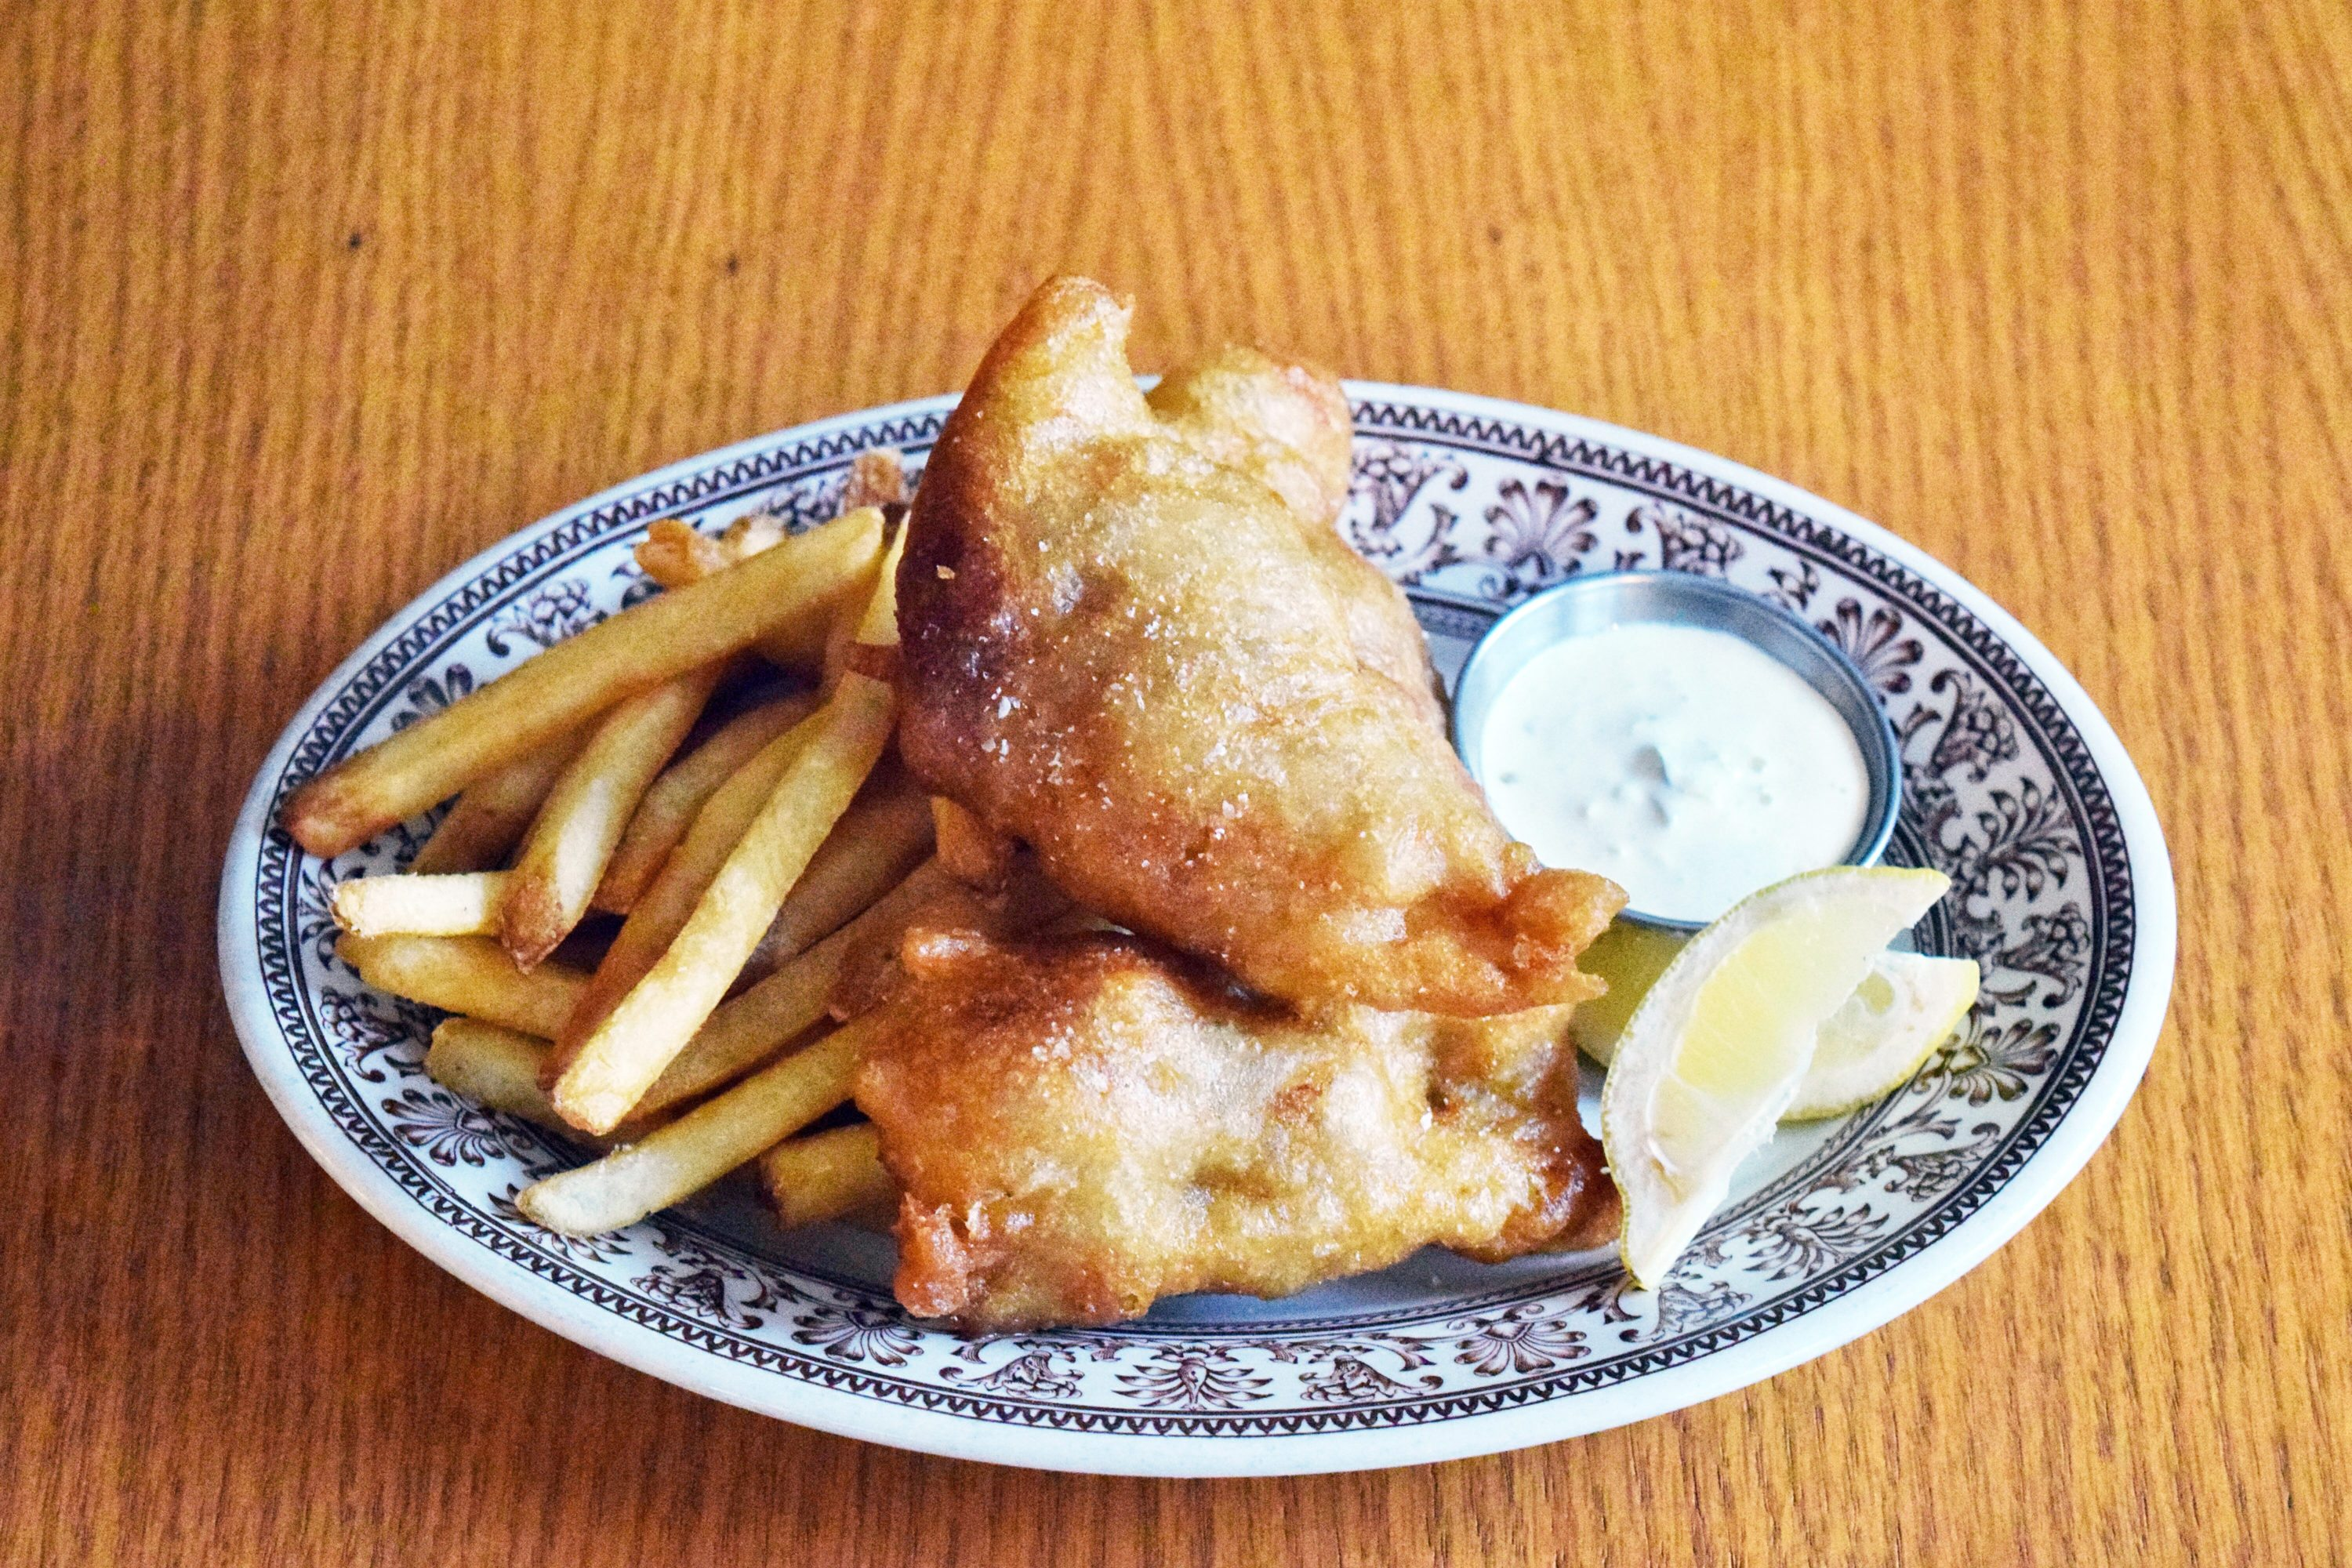 The Third serves a right-sized portion of haddock and chips for just $10